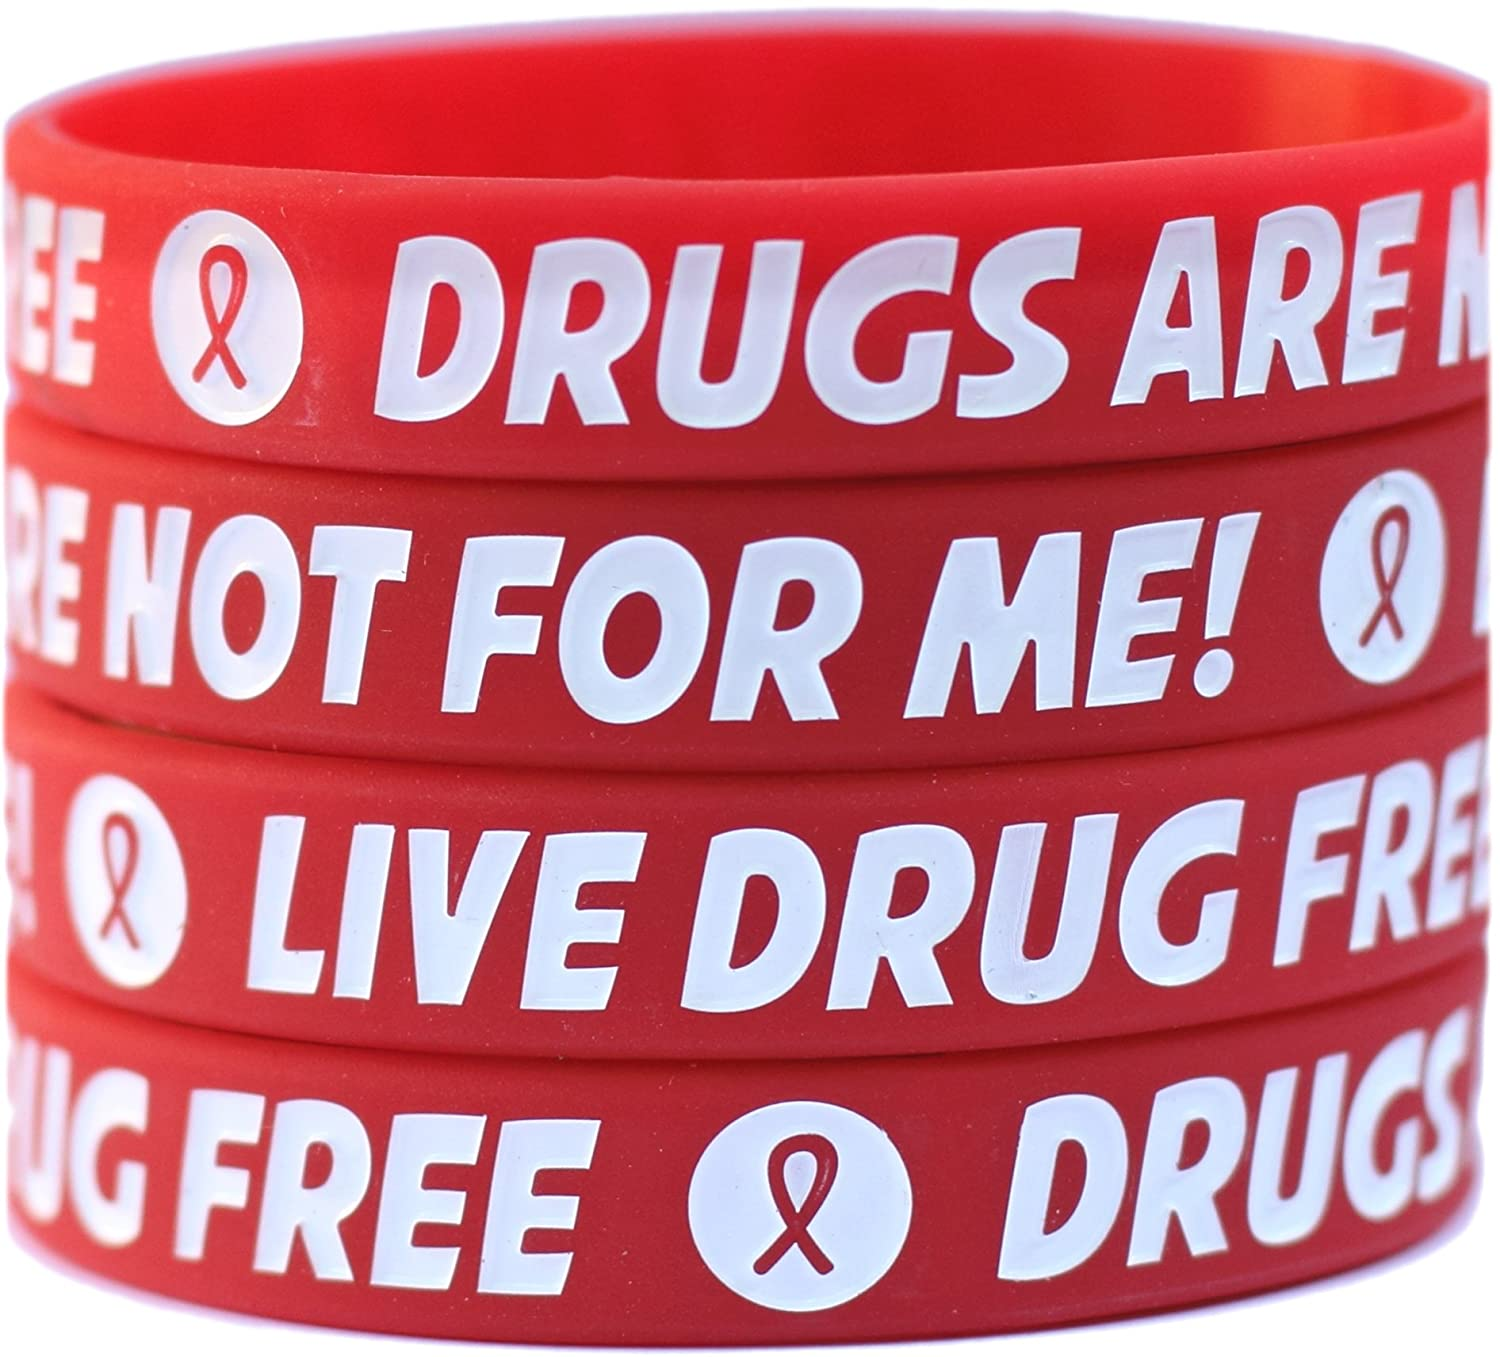 wristband fooled in don so bracelets manufacturers ribbon be bracelet t is cheap allproducts red silicone week can free fact latex